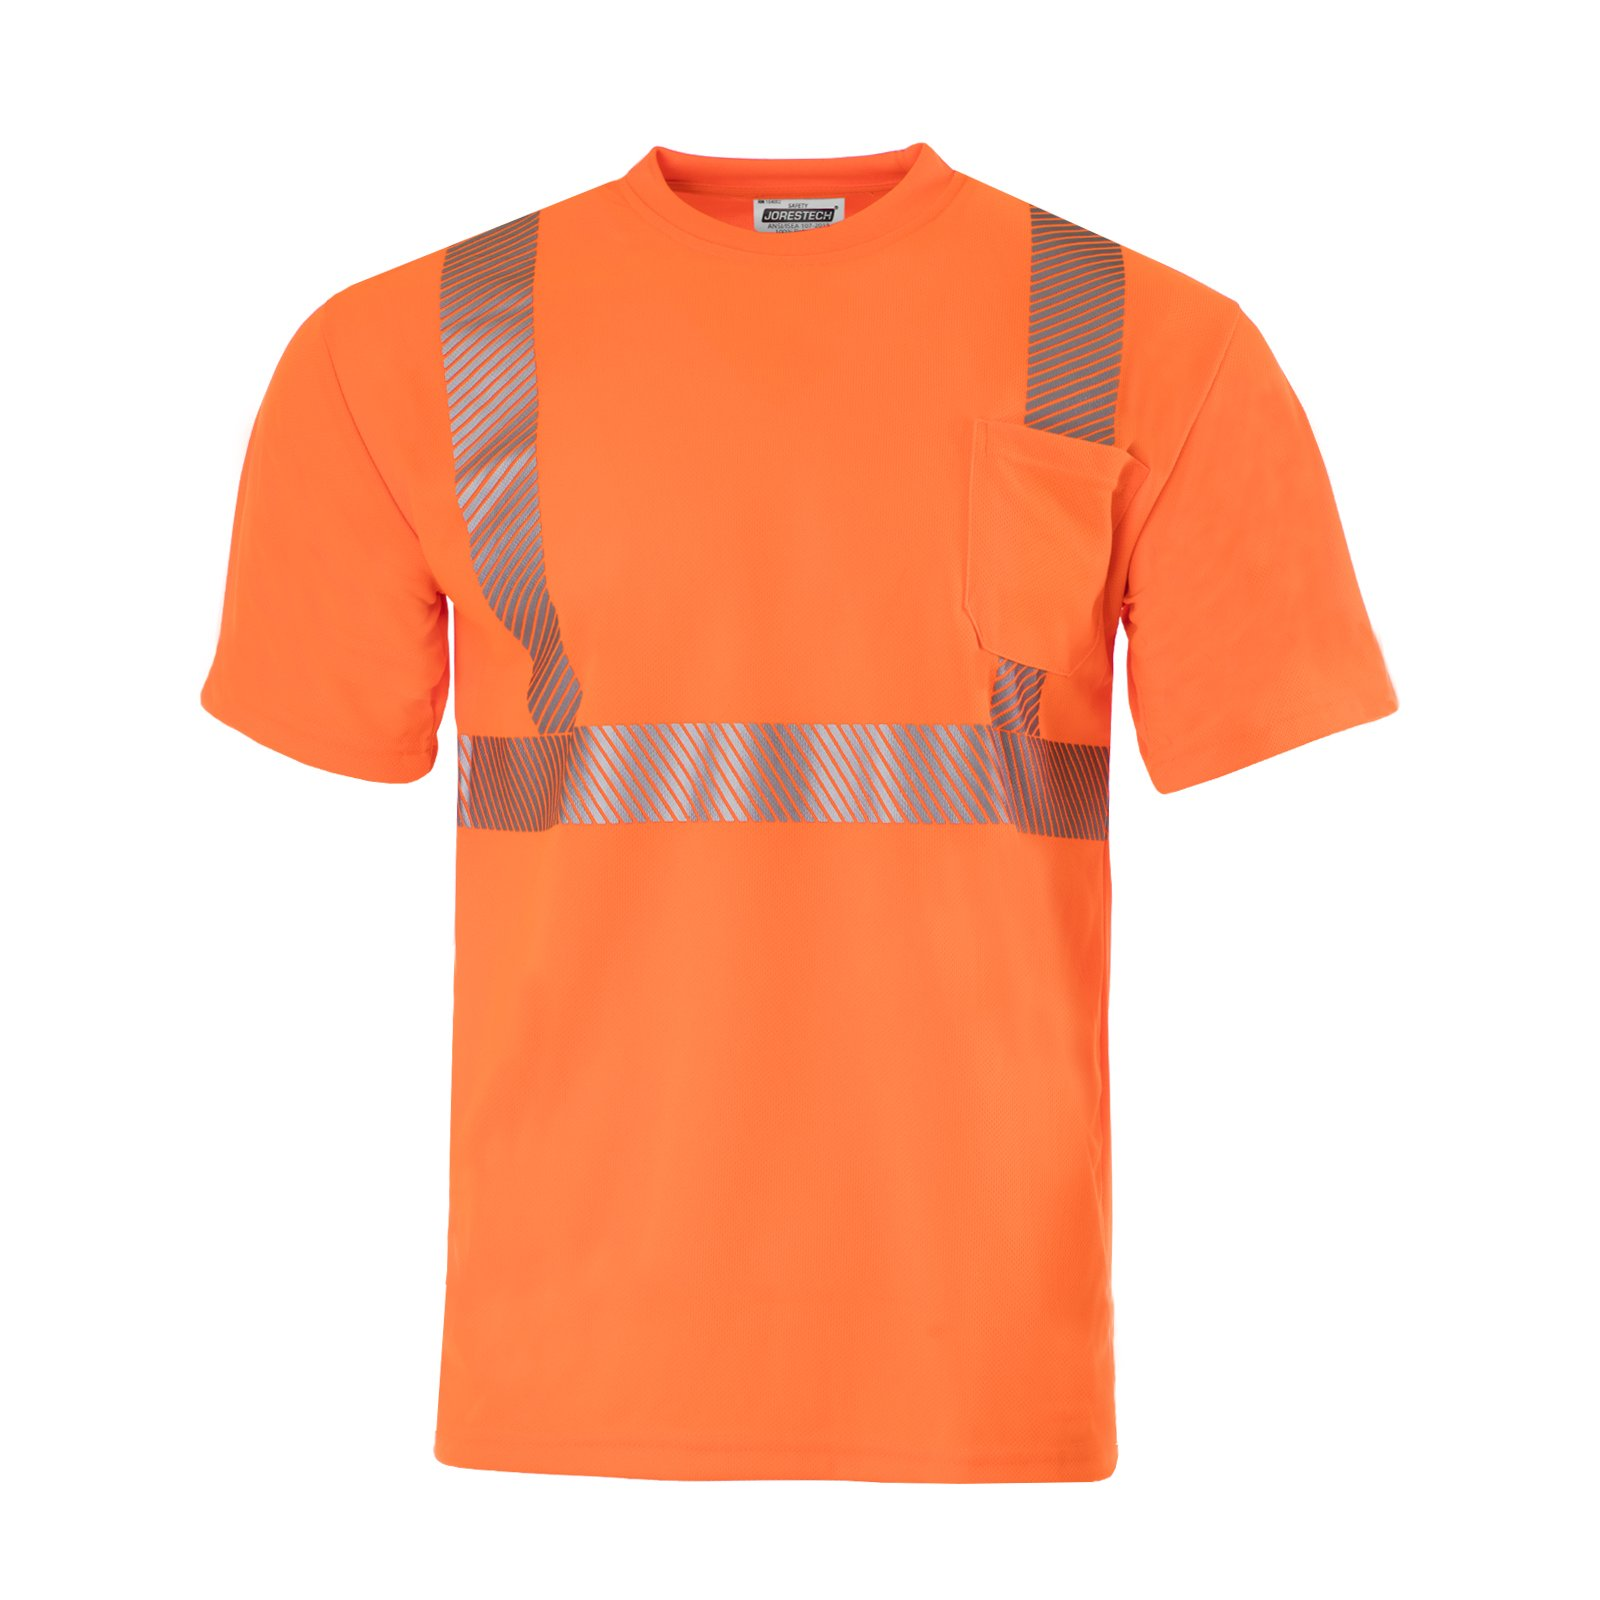 JORESTECH Safety T Shirt Heat Transfer Reflective High Visibility Short Sleeve Orange ANSI Class 2 Level 2 Type R TS-03 (M)